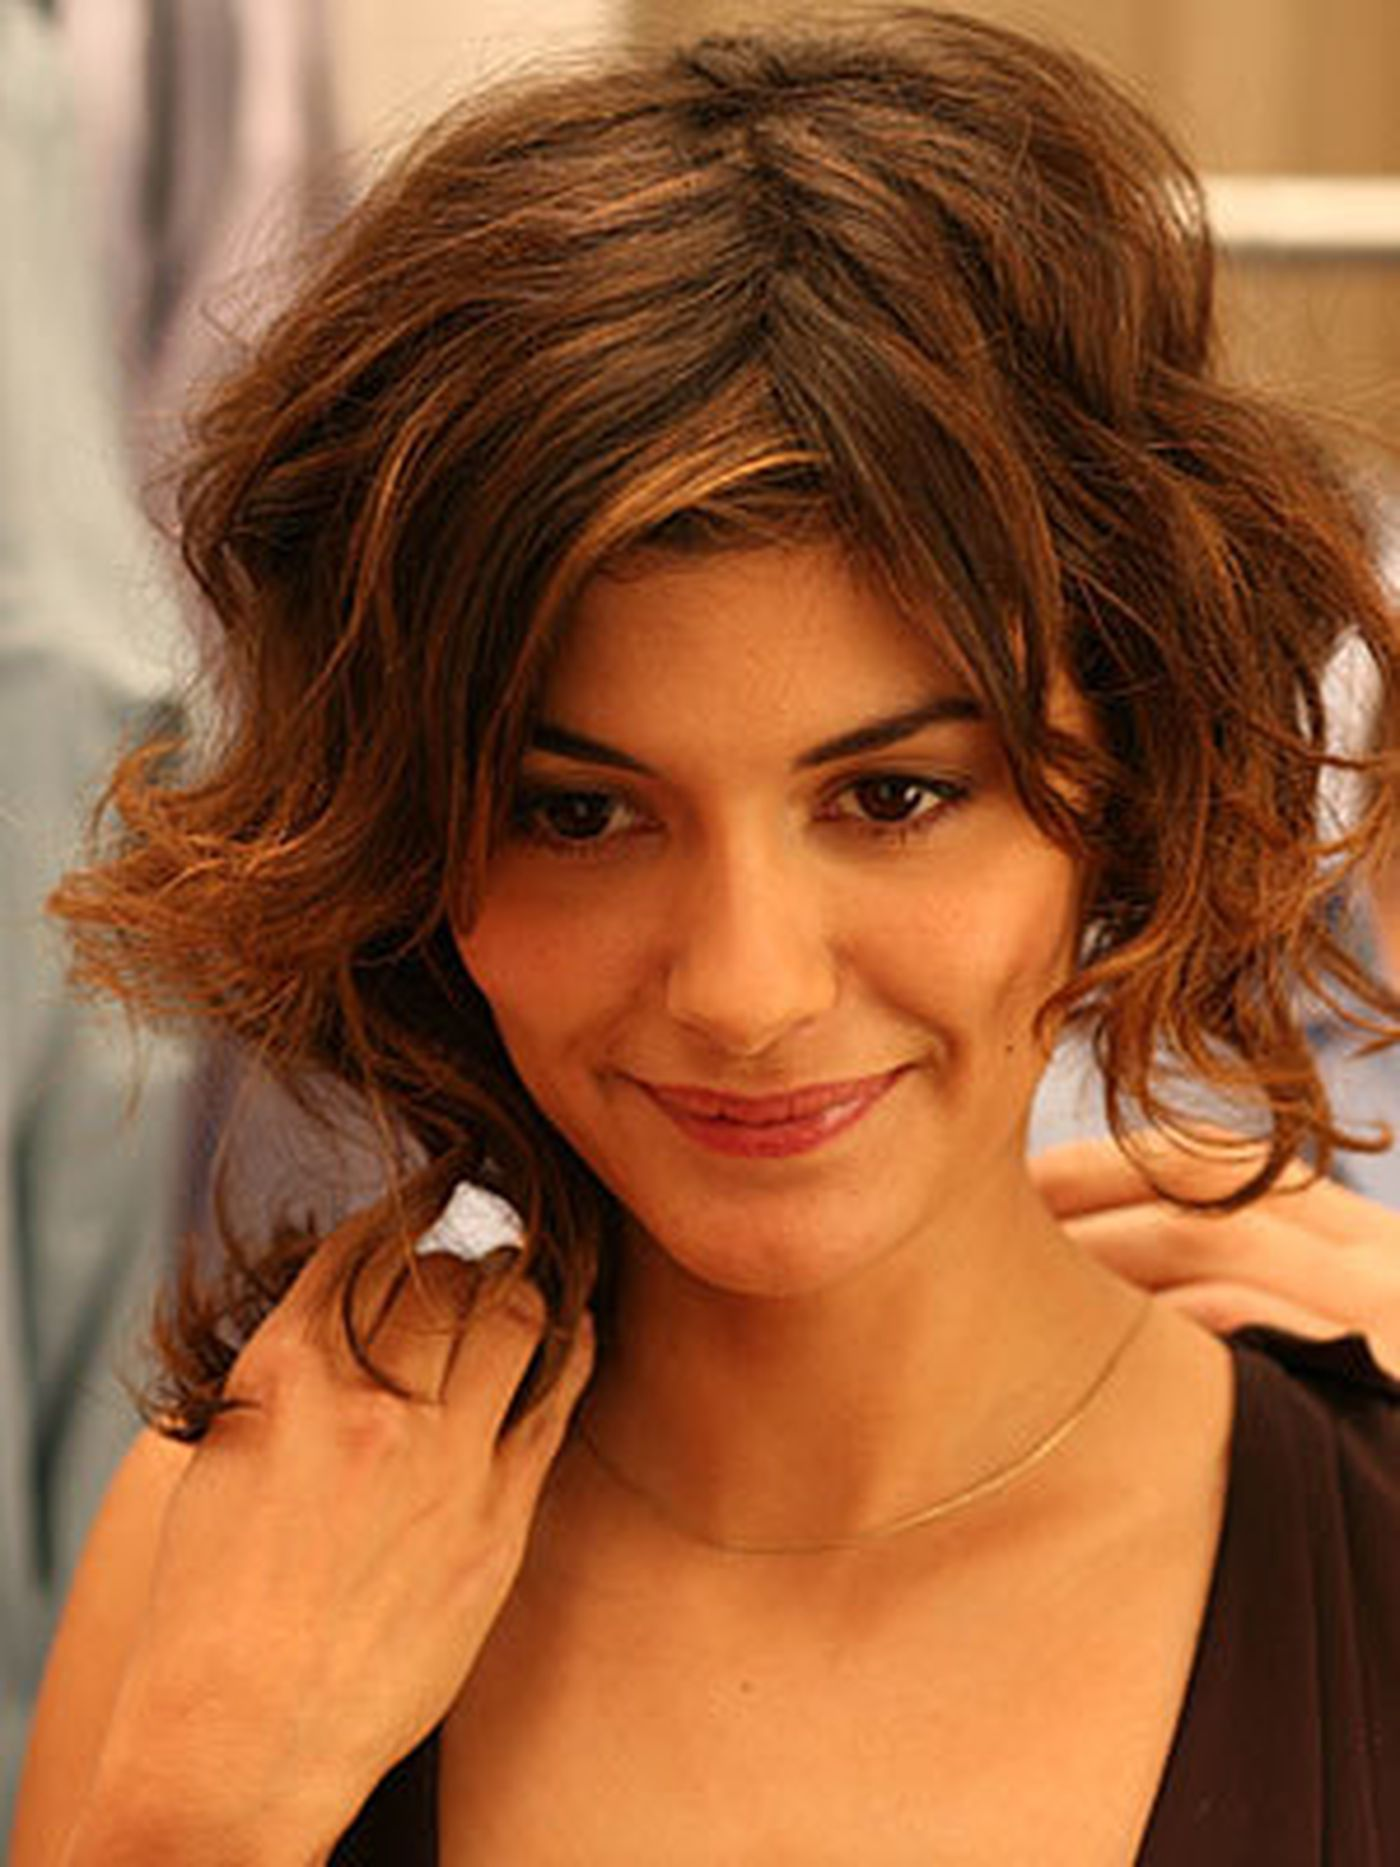 Audiences loved Audrey Tautou as 'Amélie.' Now she